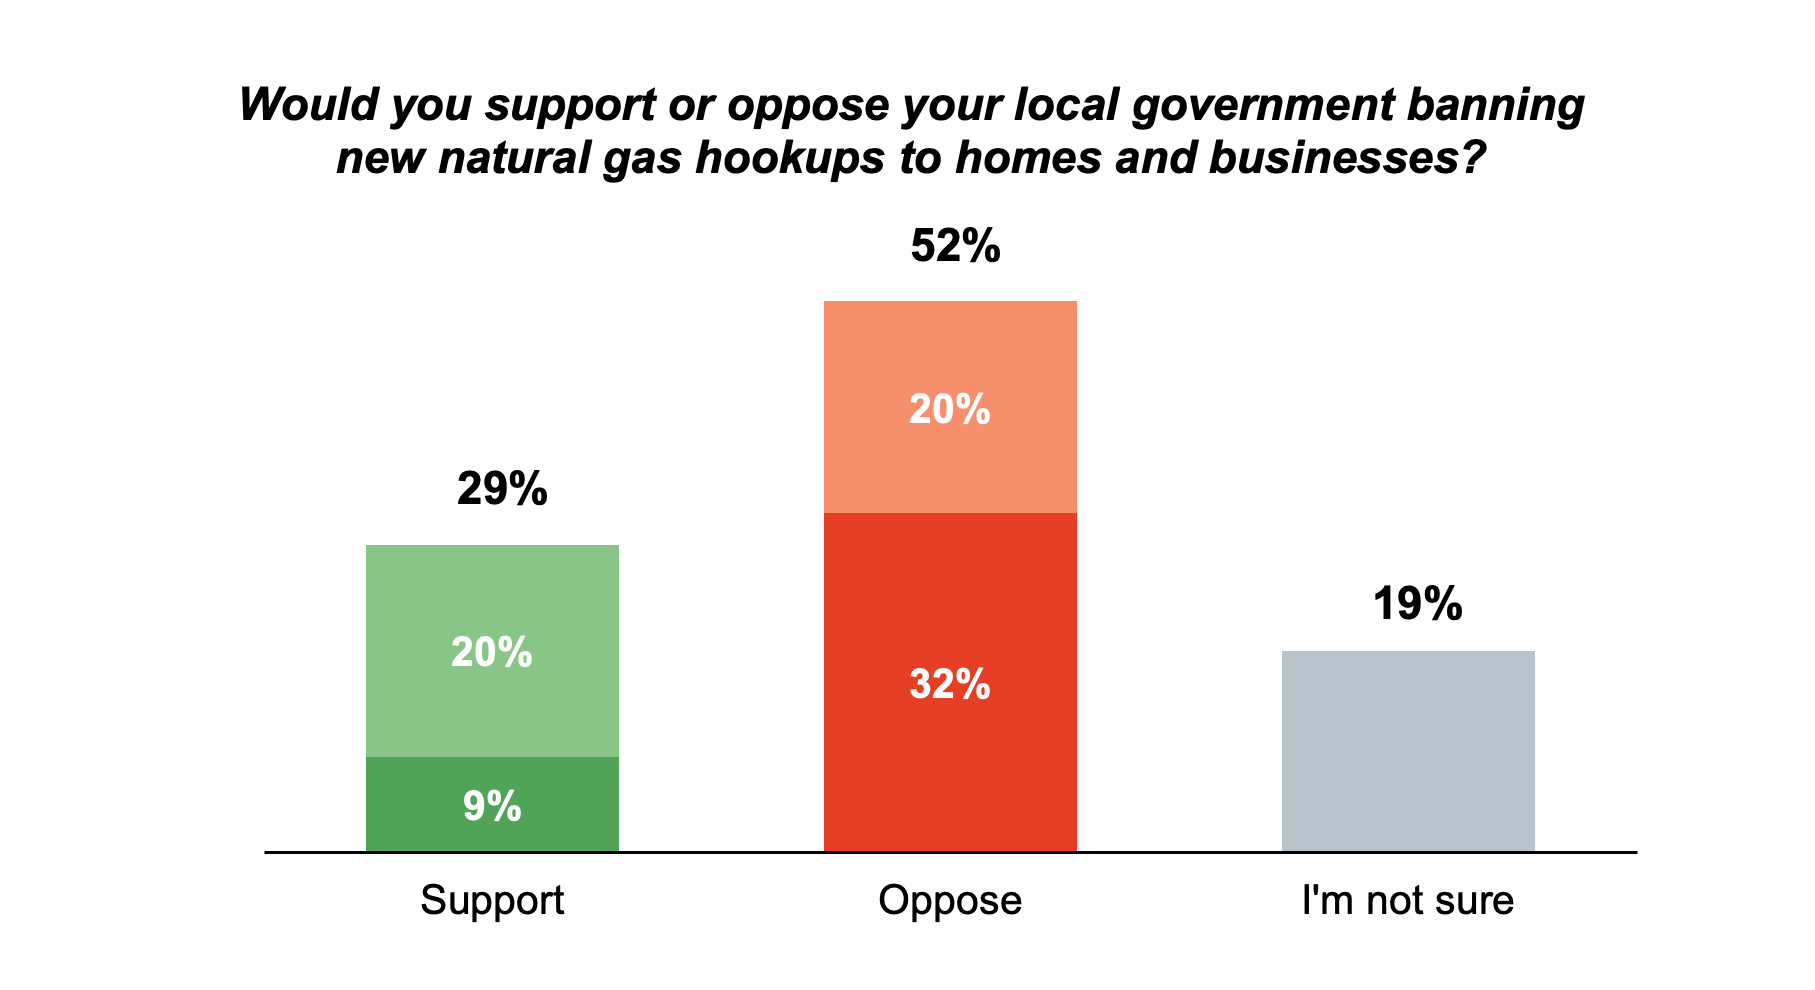 Stacked bar graph results from asking Oregon residents if they would support or oppose local governments banning new natural gas hookups to homes and businesses.